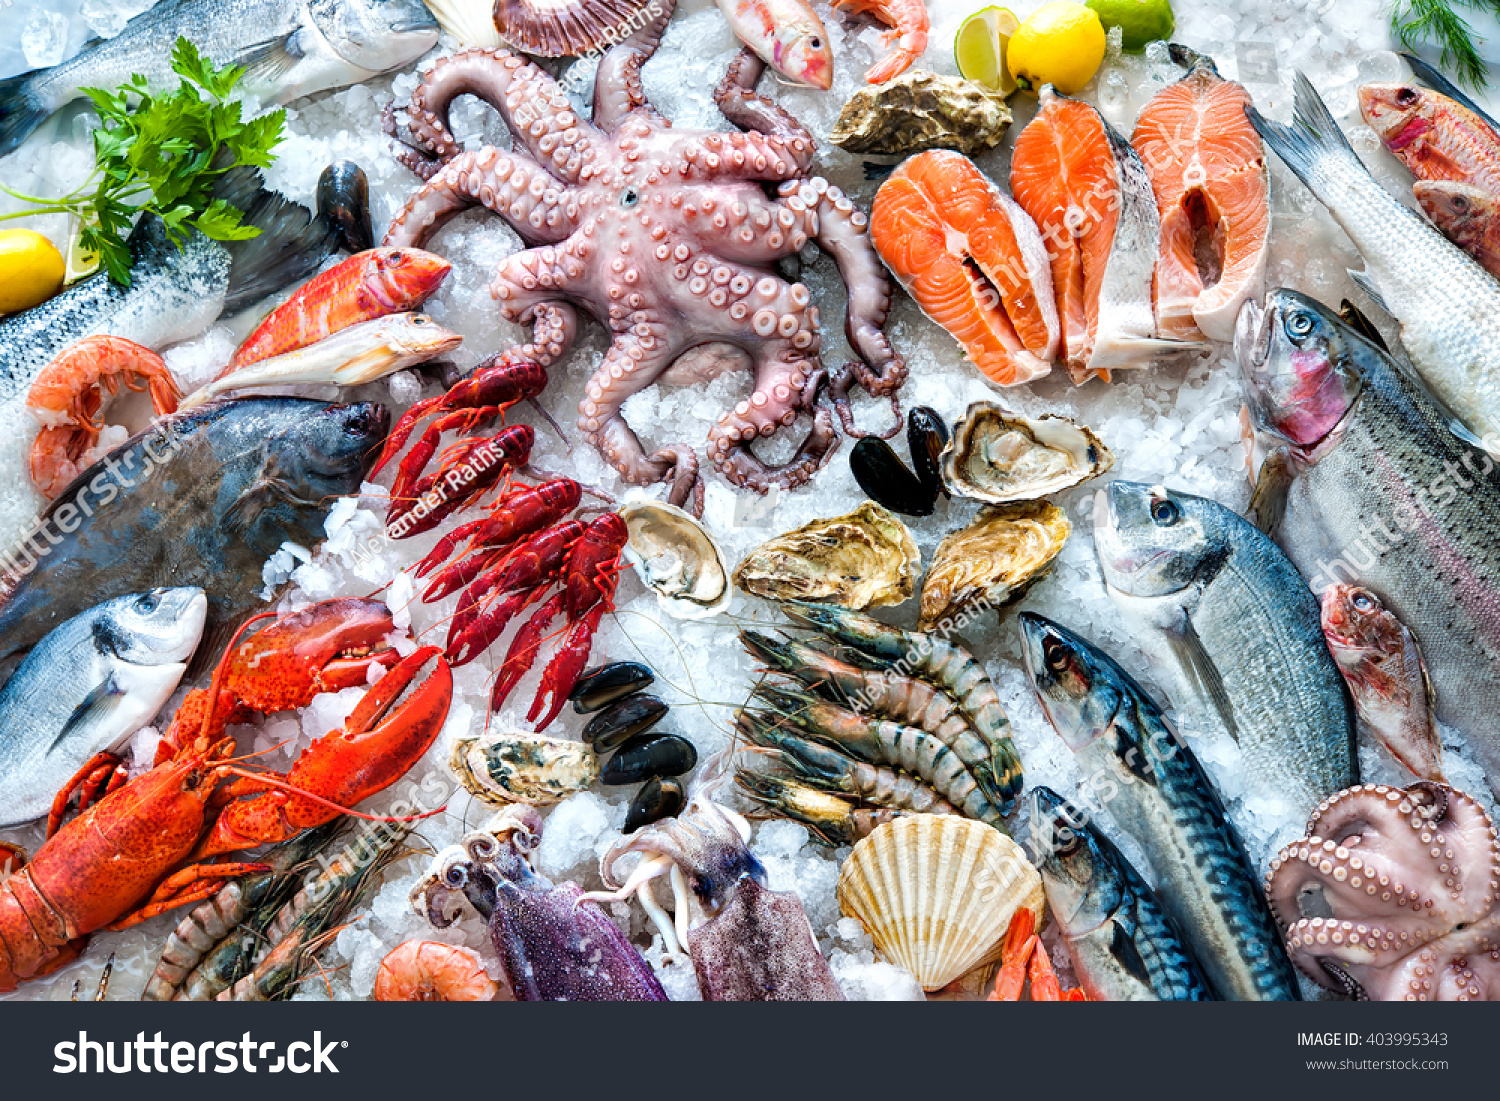 Seafood on ice fish market stock photo 403995343 for Seafood fish market